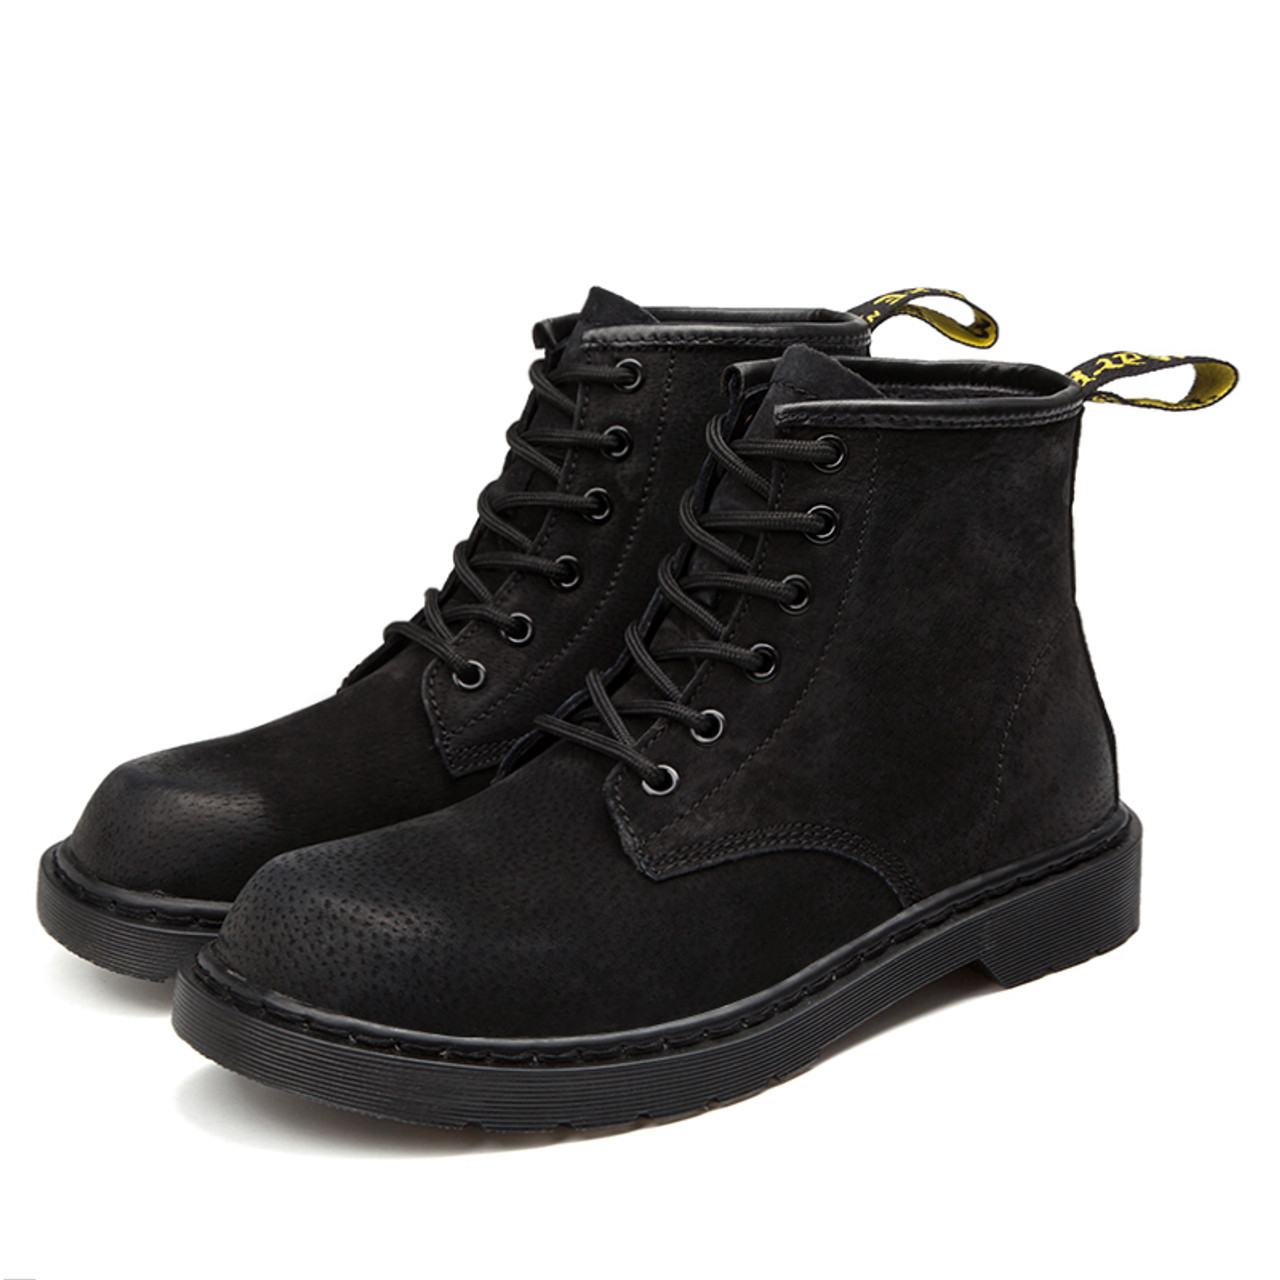 82784007e5f ... Vancat Brand Warm Men s Autumn Winter Genuine Leather Men Waterproof Snow  Boots Work Safety Ankle Boots ...